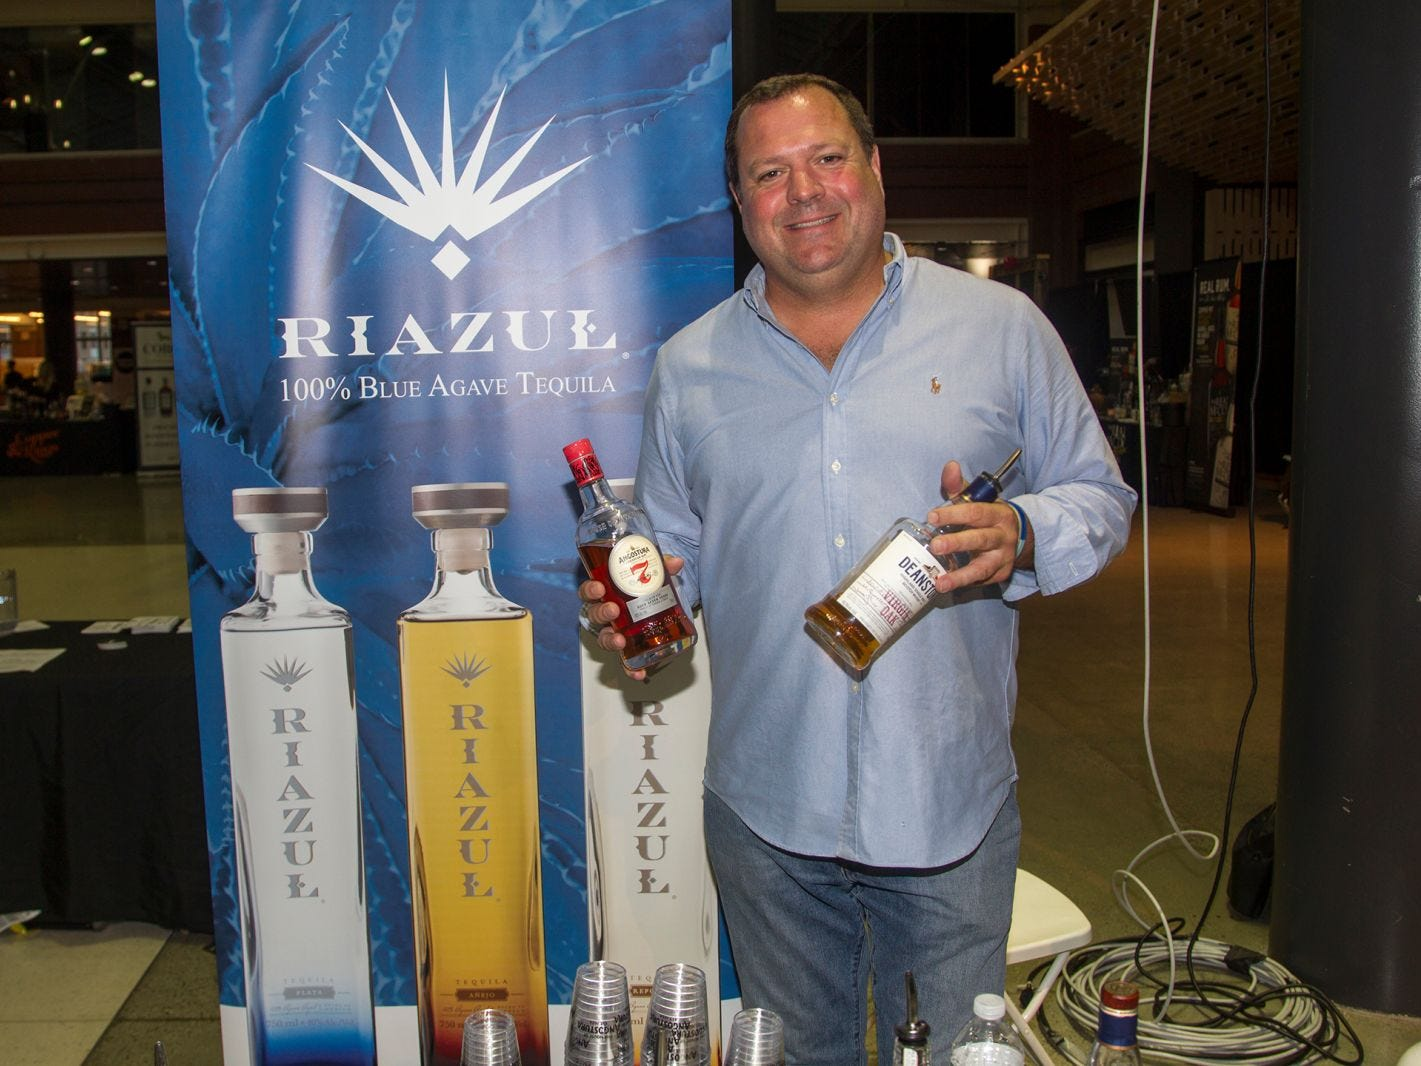 Michael Clayton. Jersey City Craft Distillery Fest at the Harborside Atrium featured more than 100 styles of spirits. Guests had the chance to taste craft-distilled spirits from moonshine, rum, cognac, whiskey, vodka, gin, tequila and more. 09/08/2018